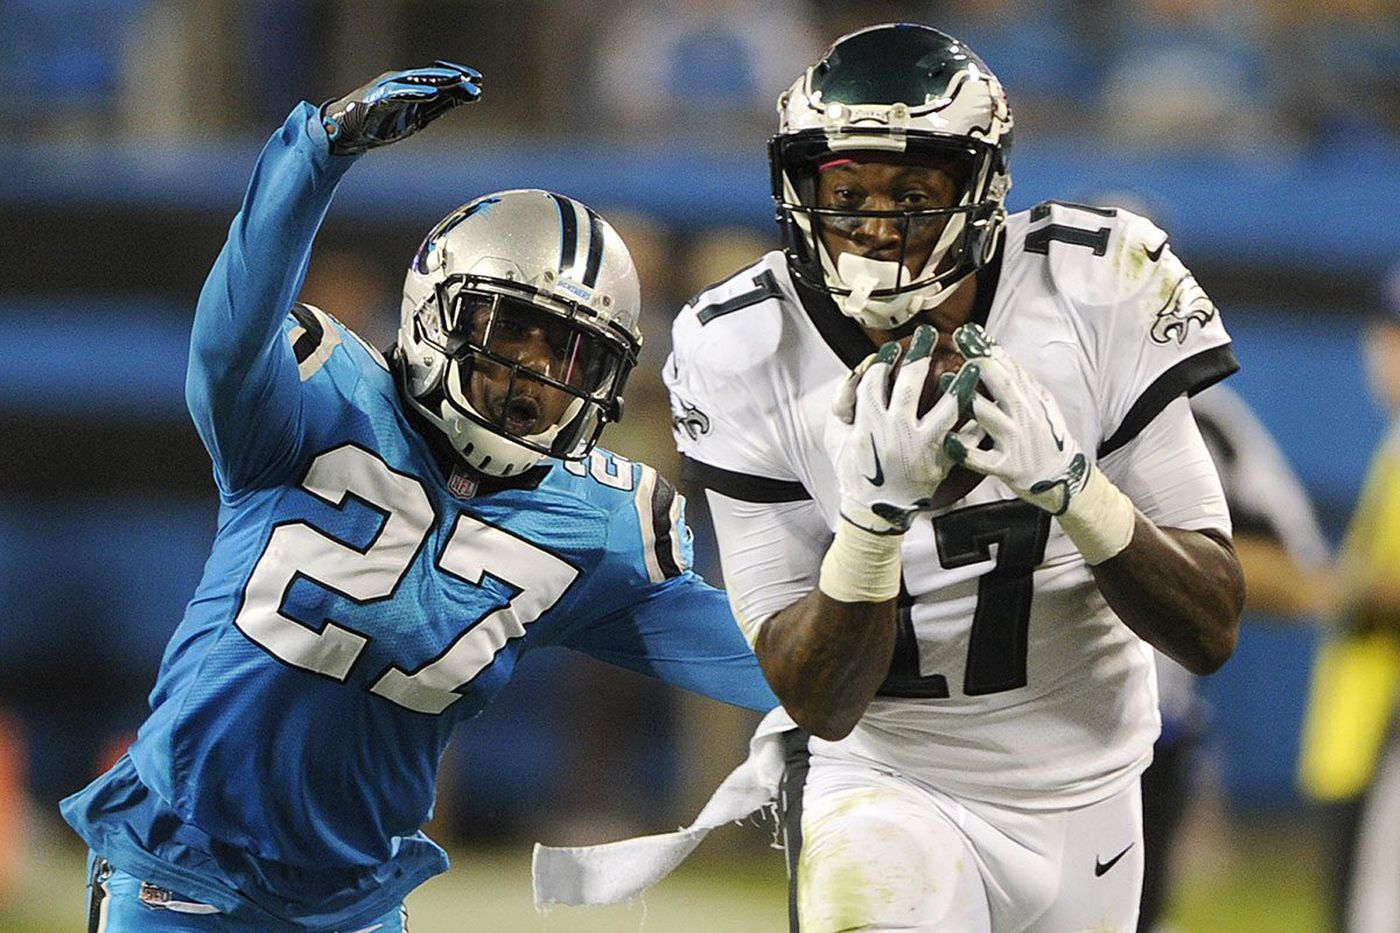 Eagles made the right choice in signing Alshon Jeffery over Terrelle Pryor